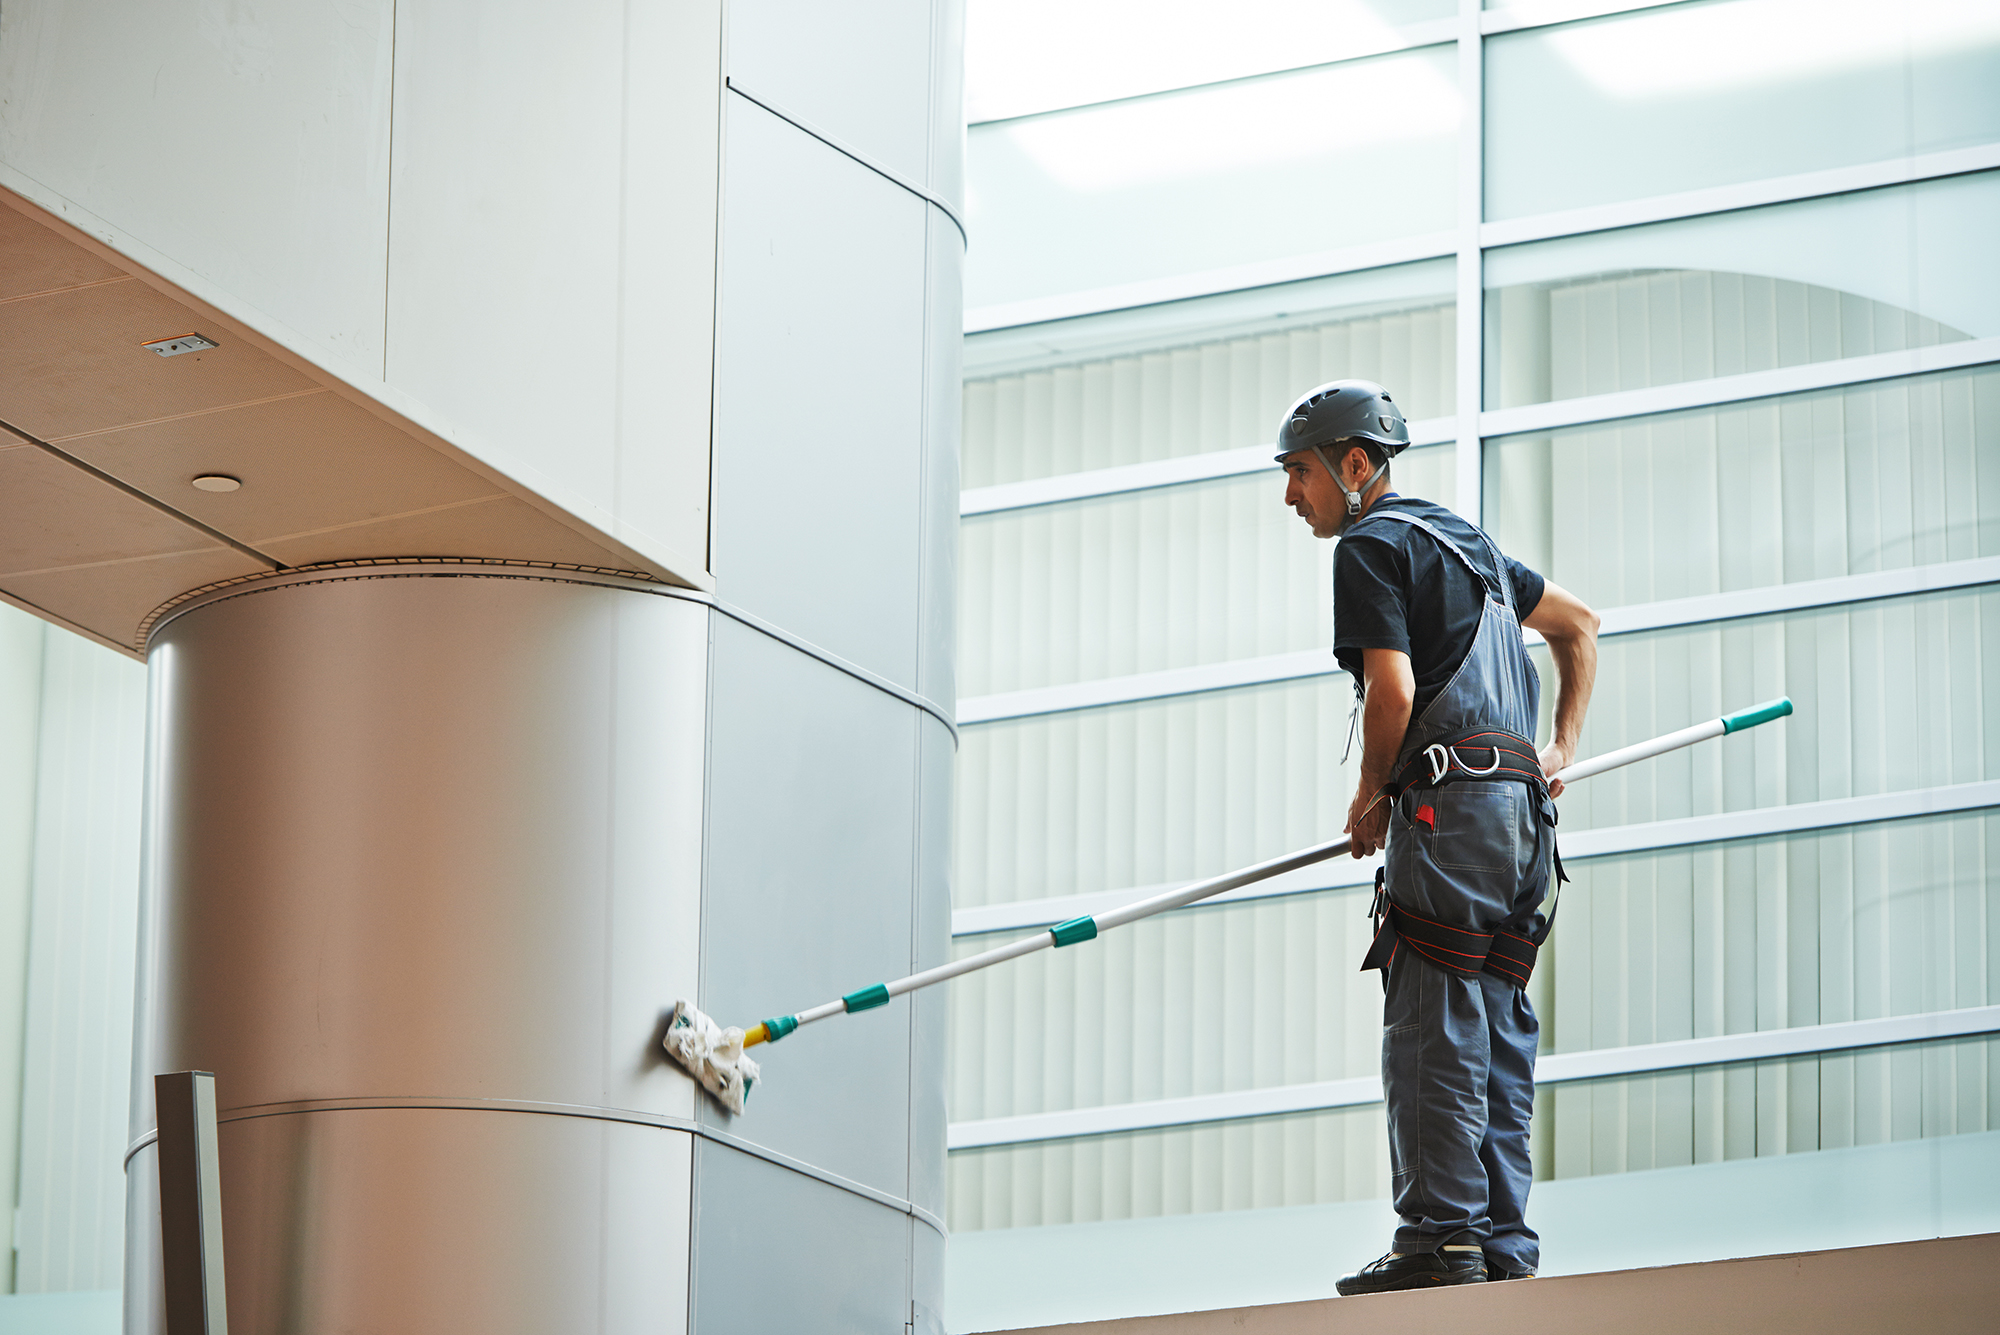 Man cleaning the wall inside the building